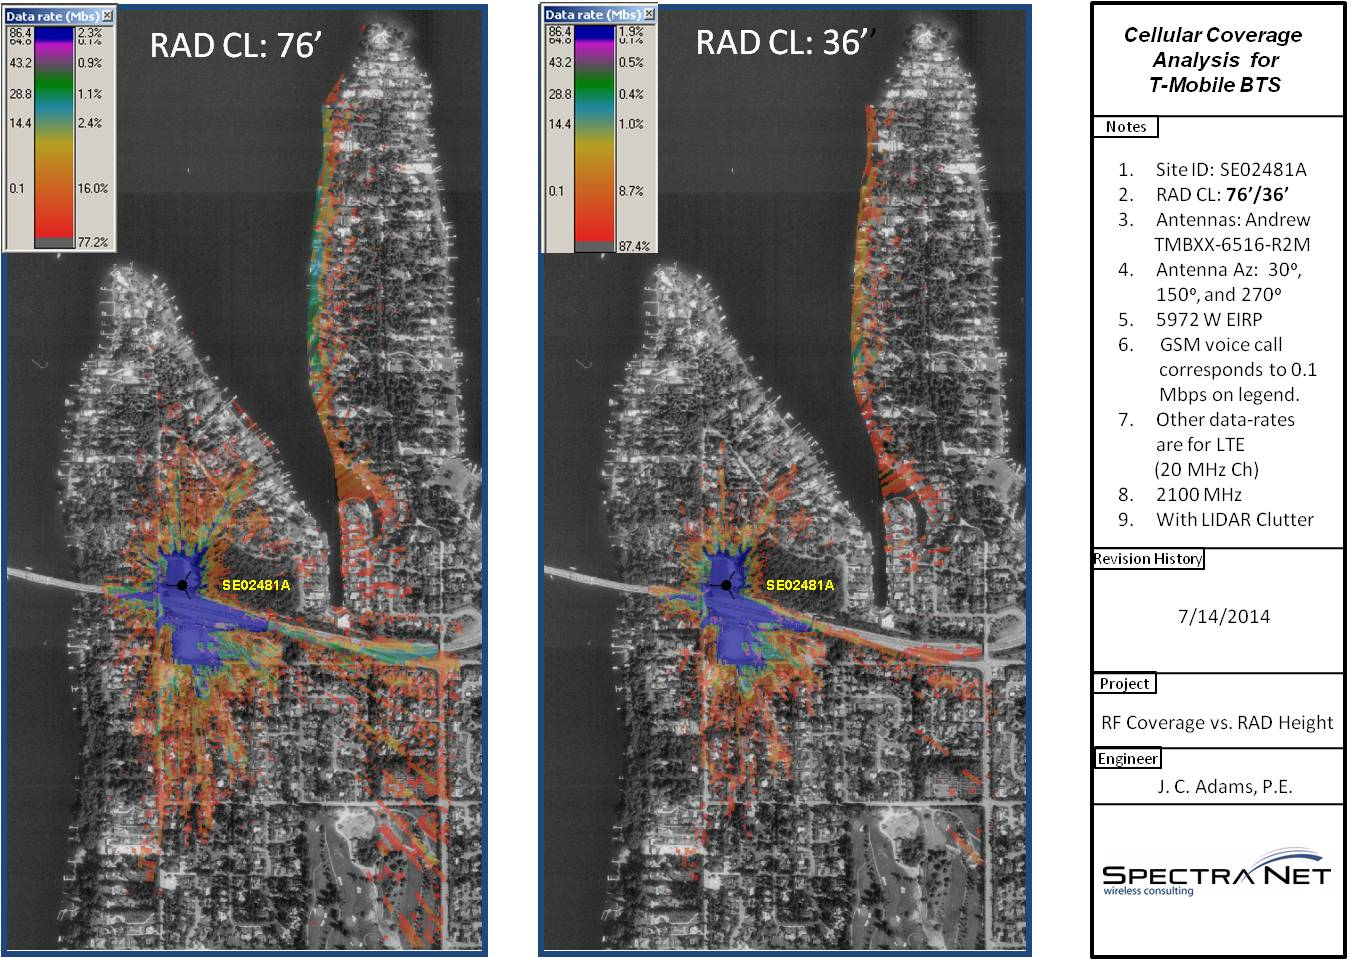 outdoor wireless coverage map using clutter data LIDAR